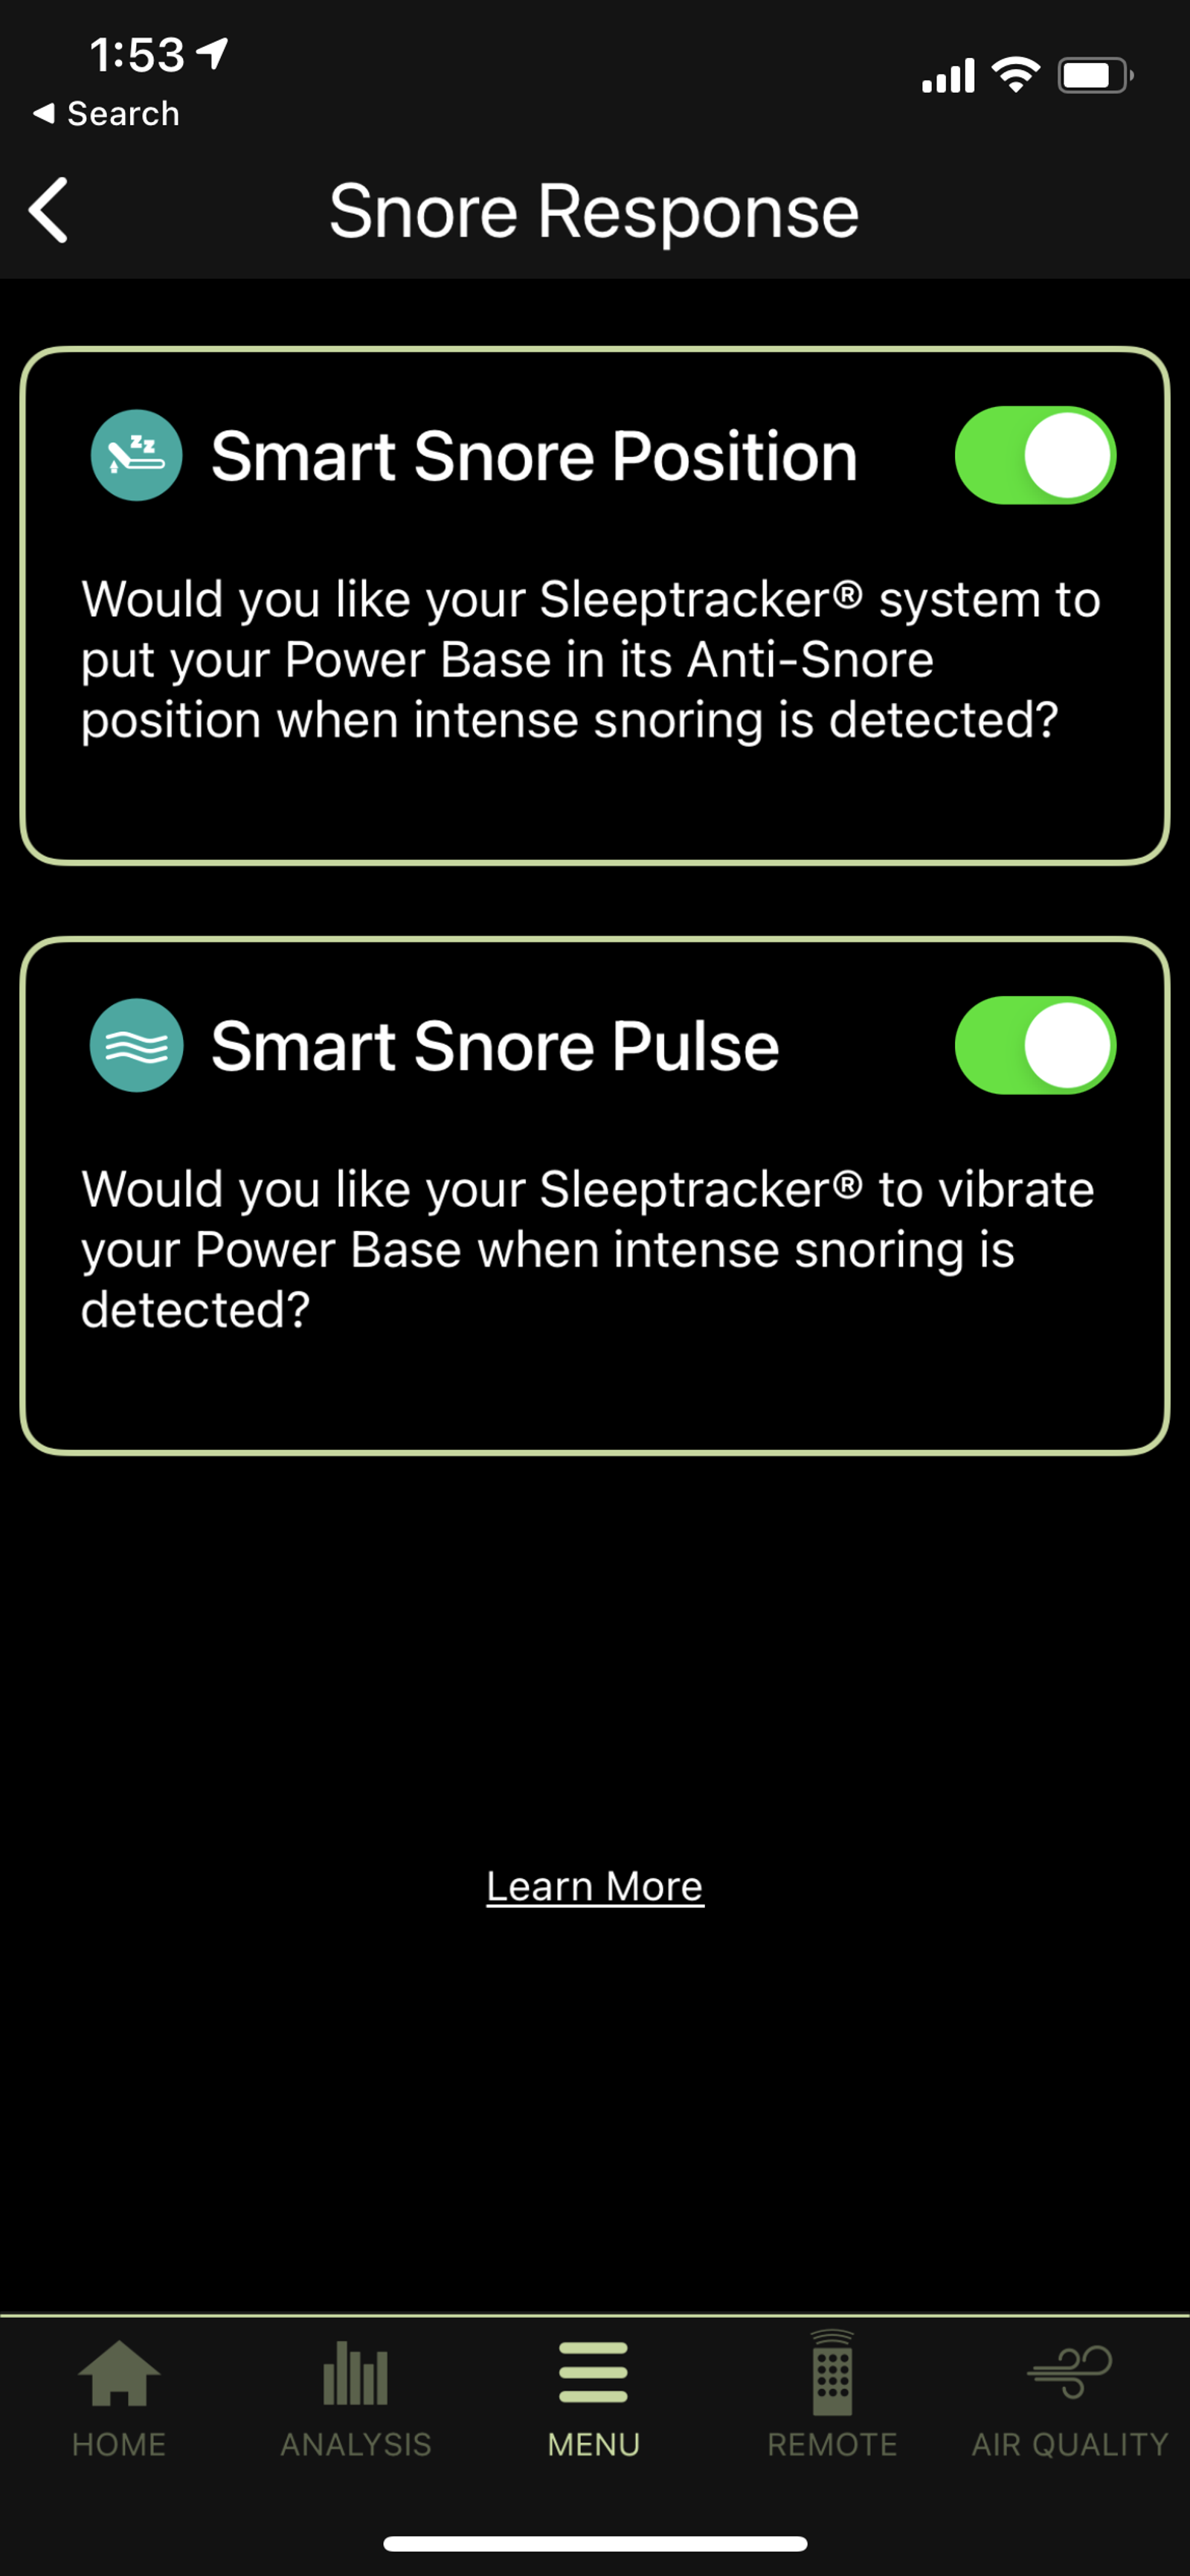 The anti-snore response is optional, and requires you to opt in by toggling on the settings in the app.